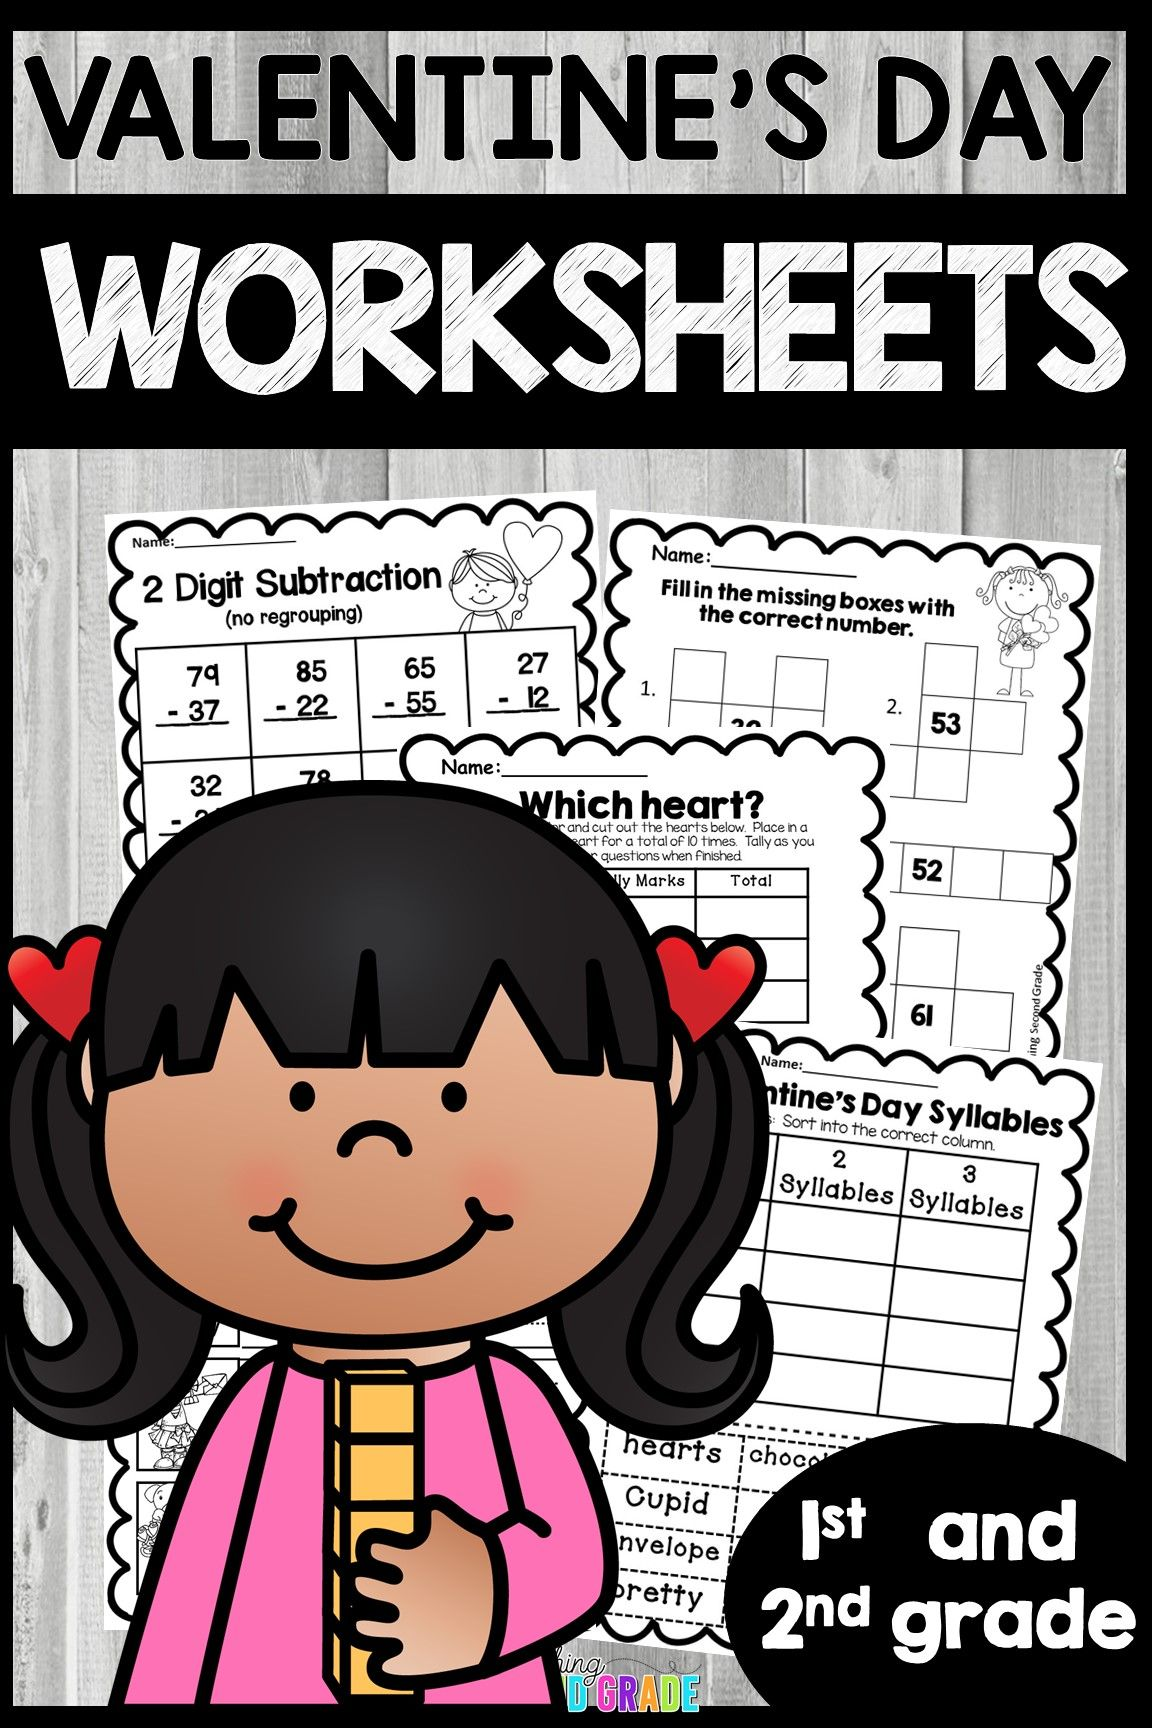 15 Best Morning Worksheets For 3rd Graders Images On Best